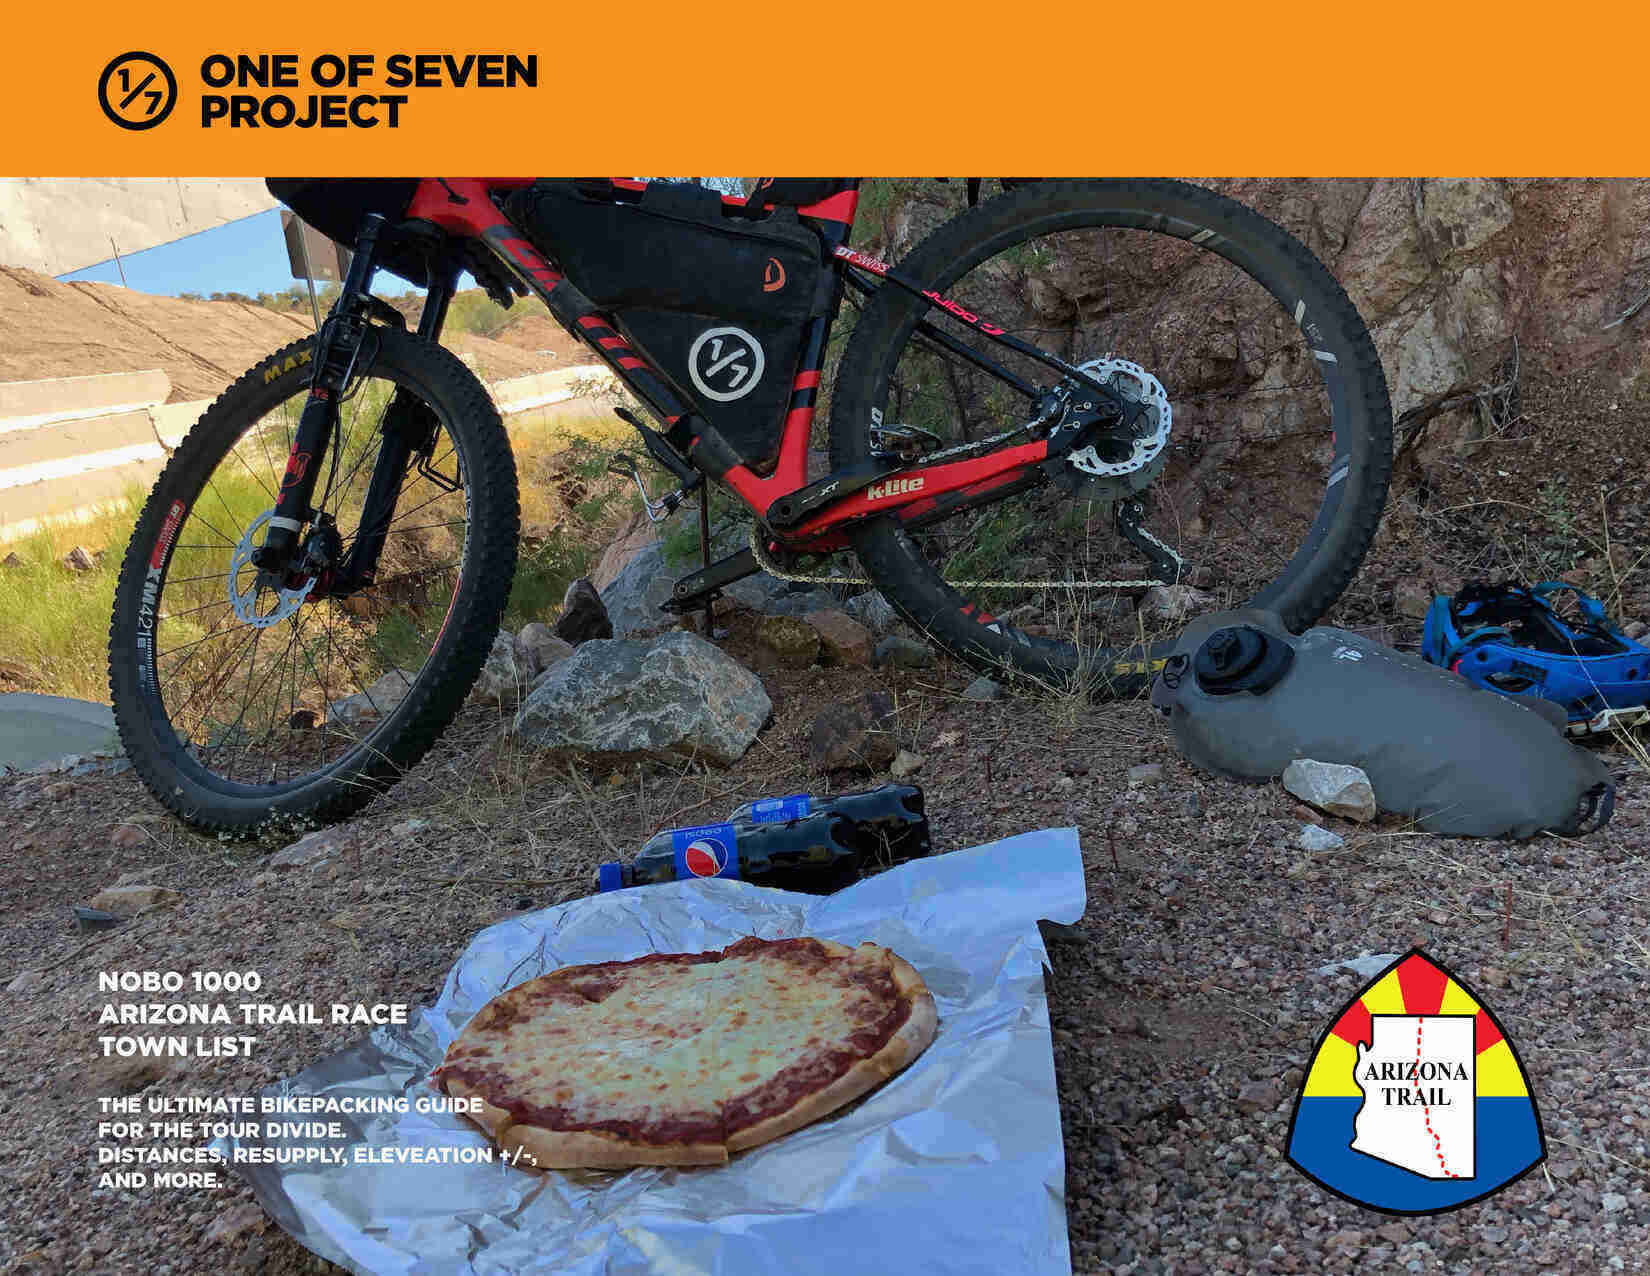 AZTR 1000 NOBO TOWN LIST Cover- Arizona Trail BIKEPACKING GUIDES PLANNING AIDS